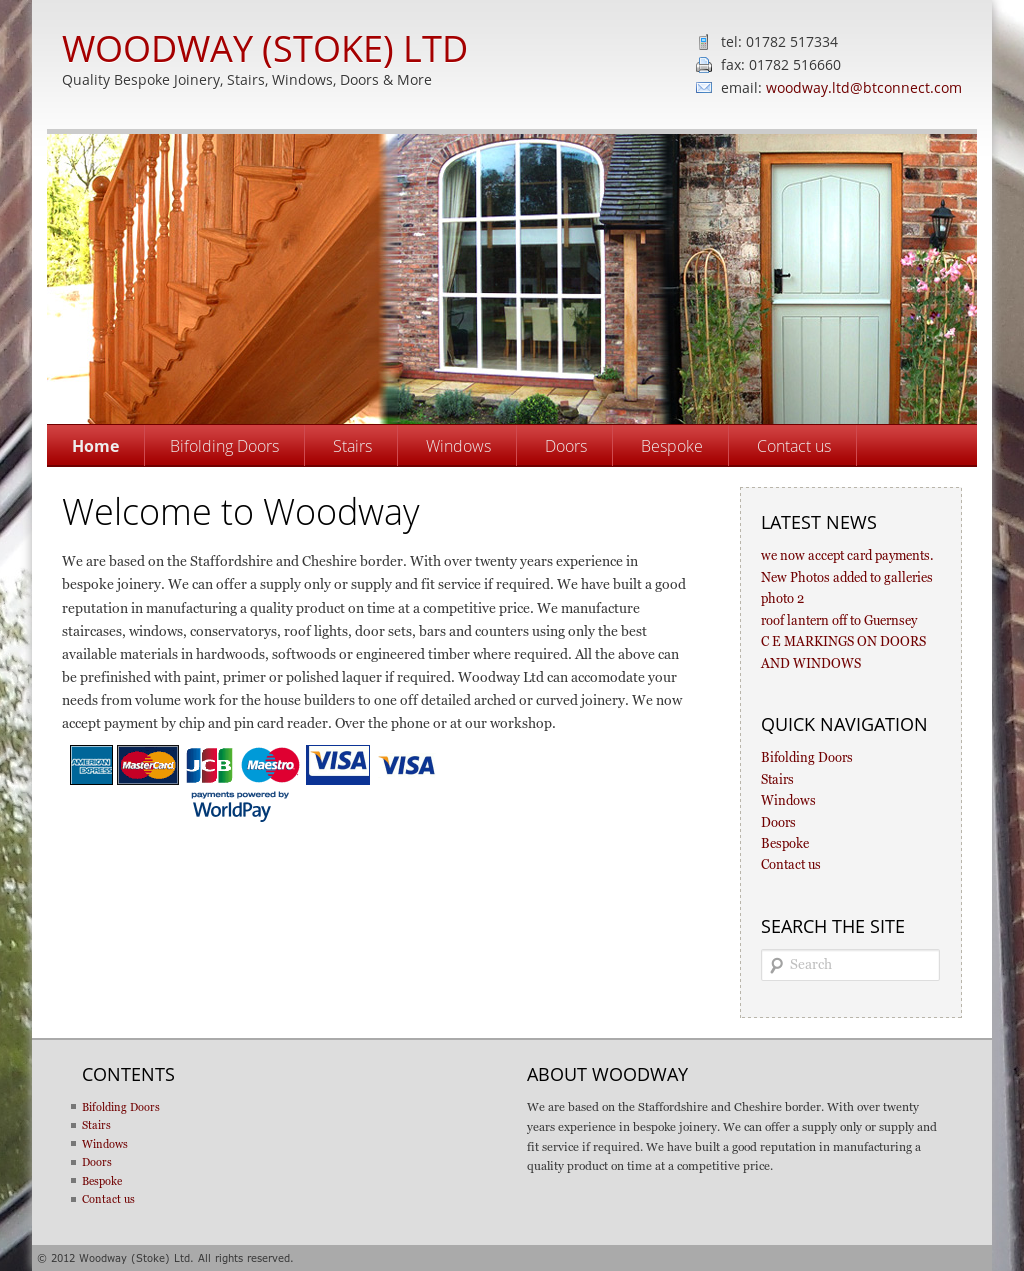 woodway dating site The history of woodway as told by i always think of the true beginning of woodway as dating back to 1865 when a civil war veteran named burl city of woodway.